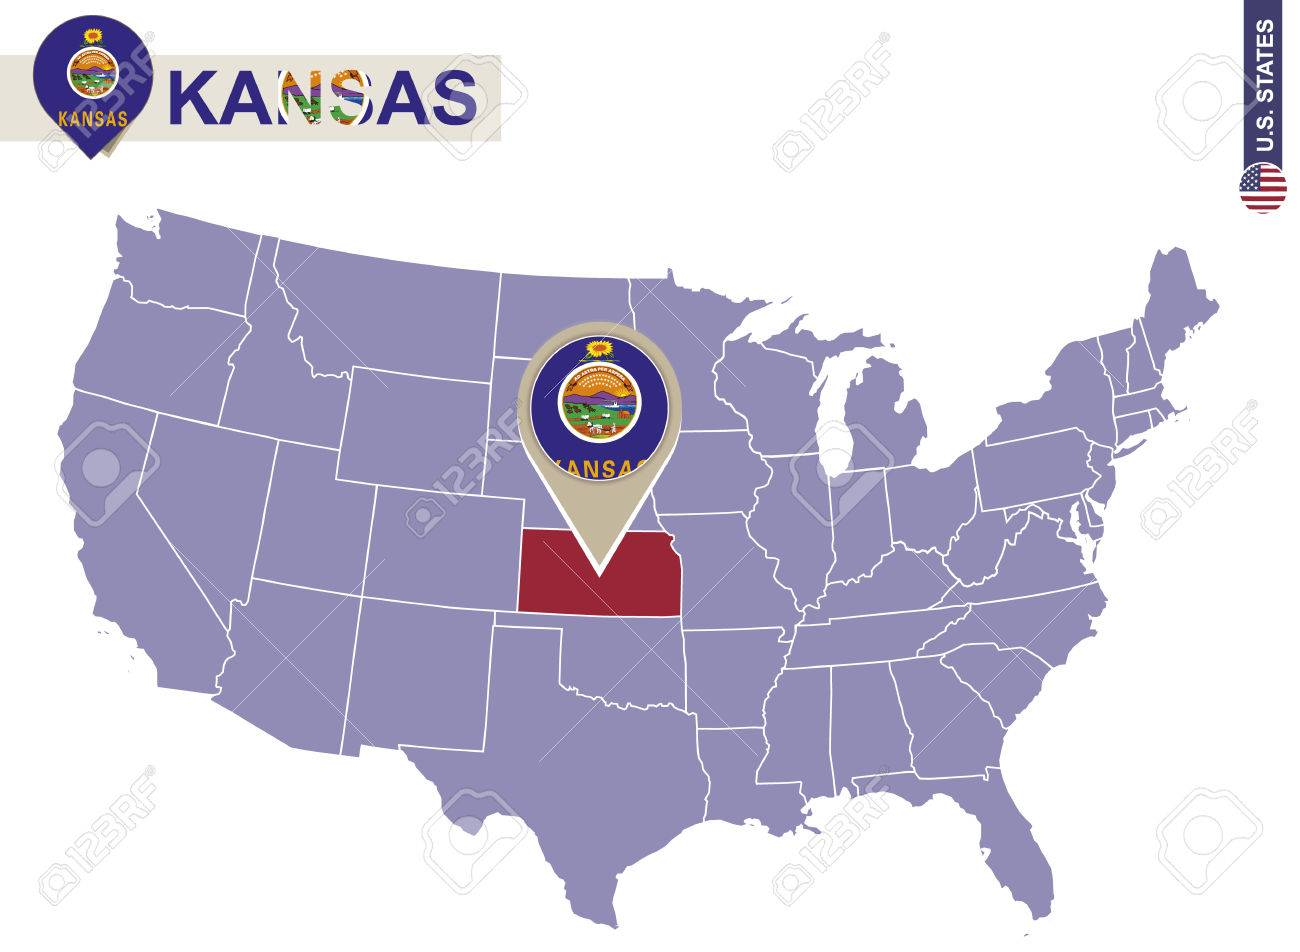 Kansas State On USA Map Kansas Flag And Map US States Royalty - Kansas map usa